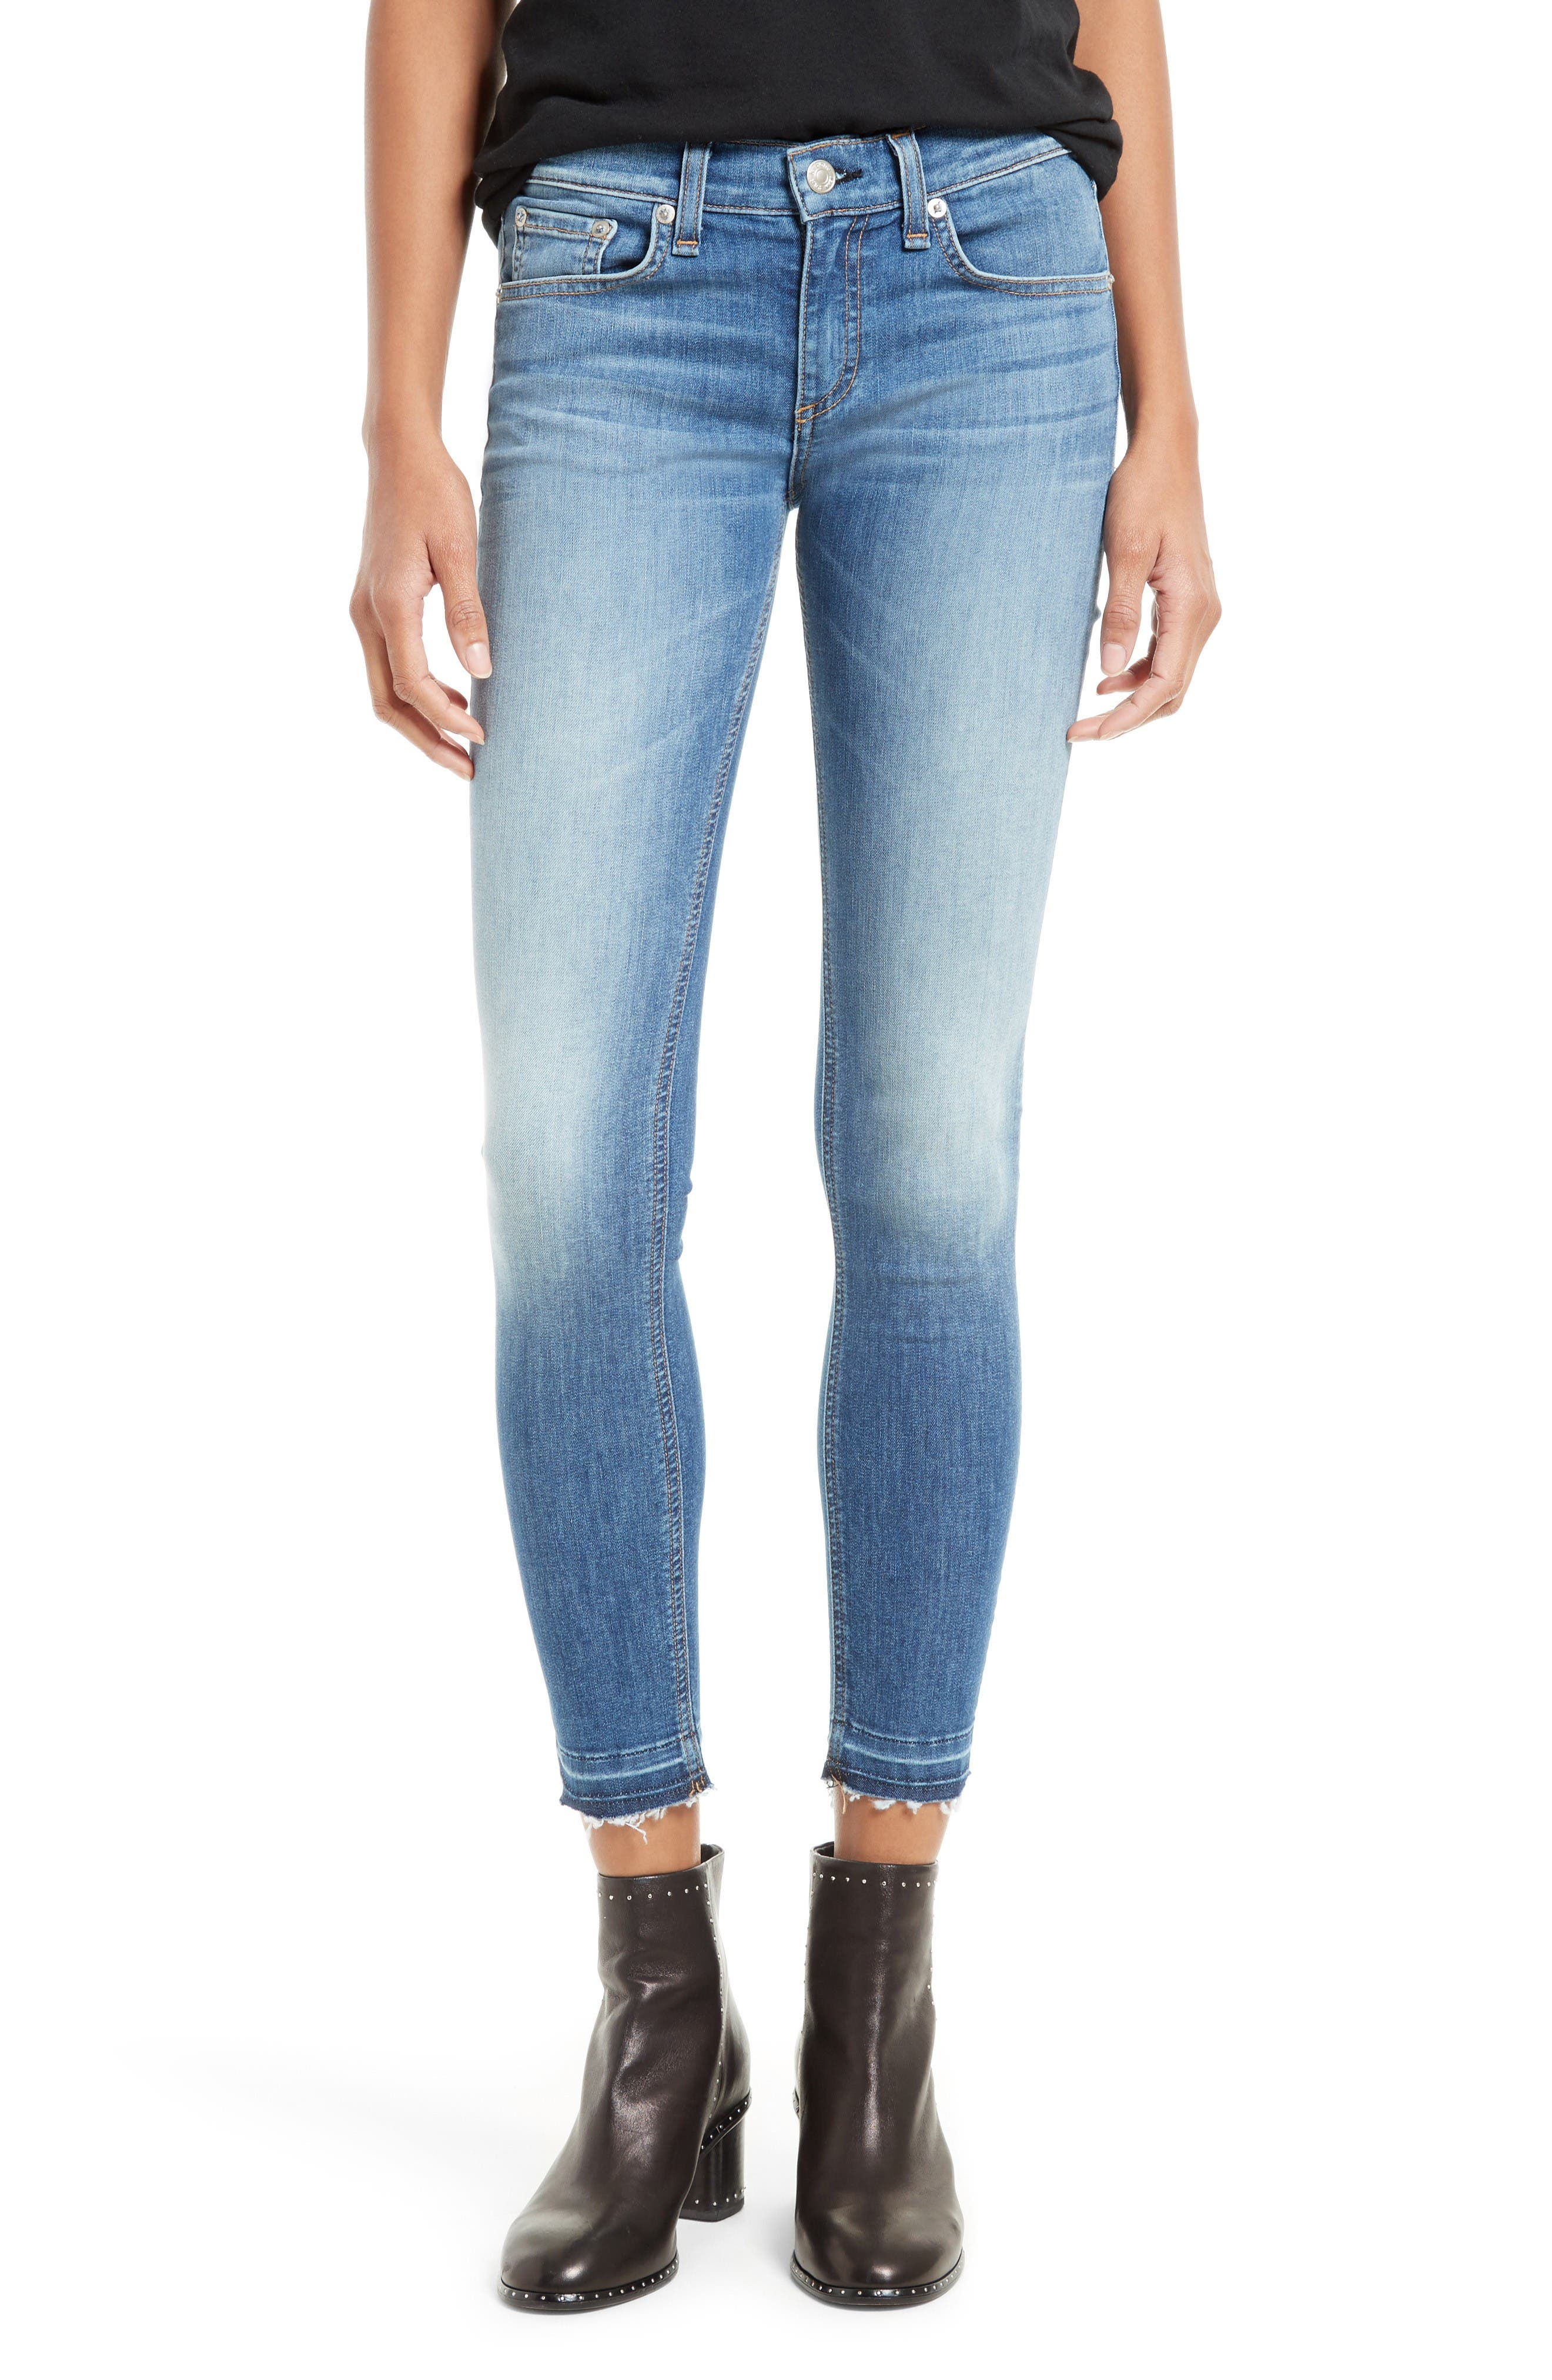 Capri Skinny Jeans,                         Main,                         color, Clean Lilly Dale